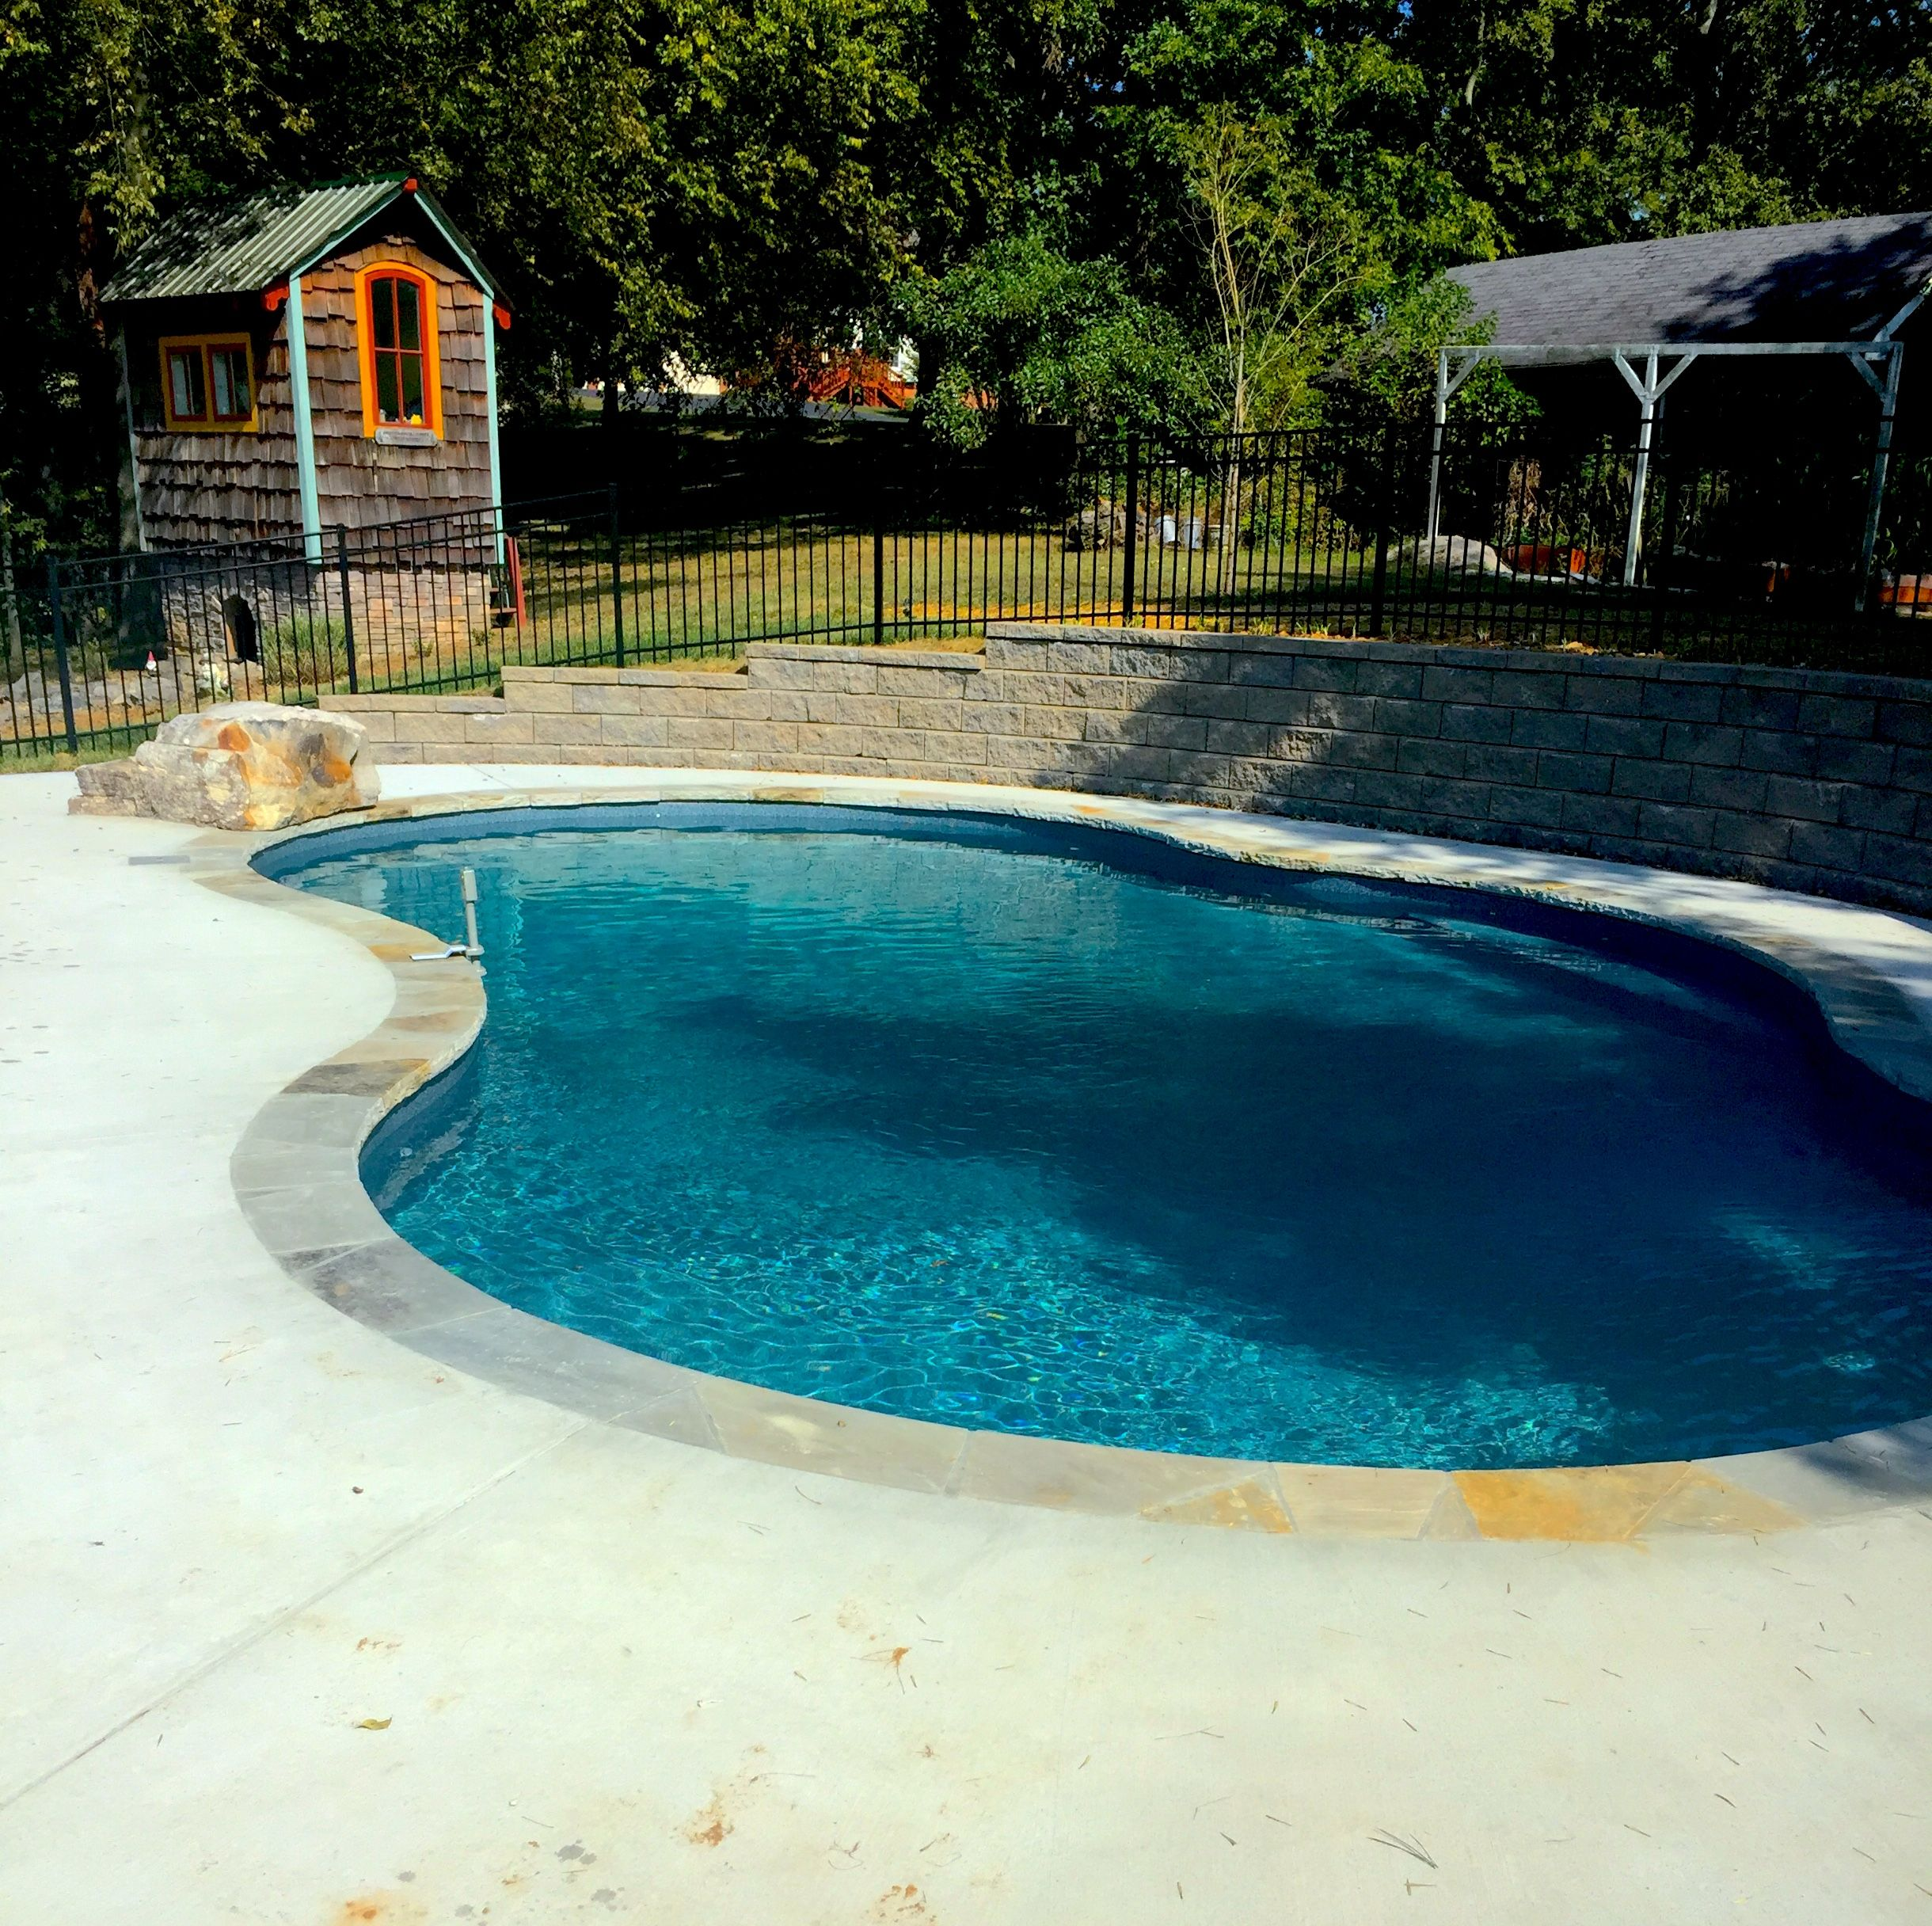 Pool And Spa Depot 16 X 19 X 34 Deer Creek Concrete Wall Pool Flagstone Coping Broom Finished Concrete Decking Bench D Spa Pool Pool Inground Pool Coping